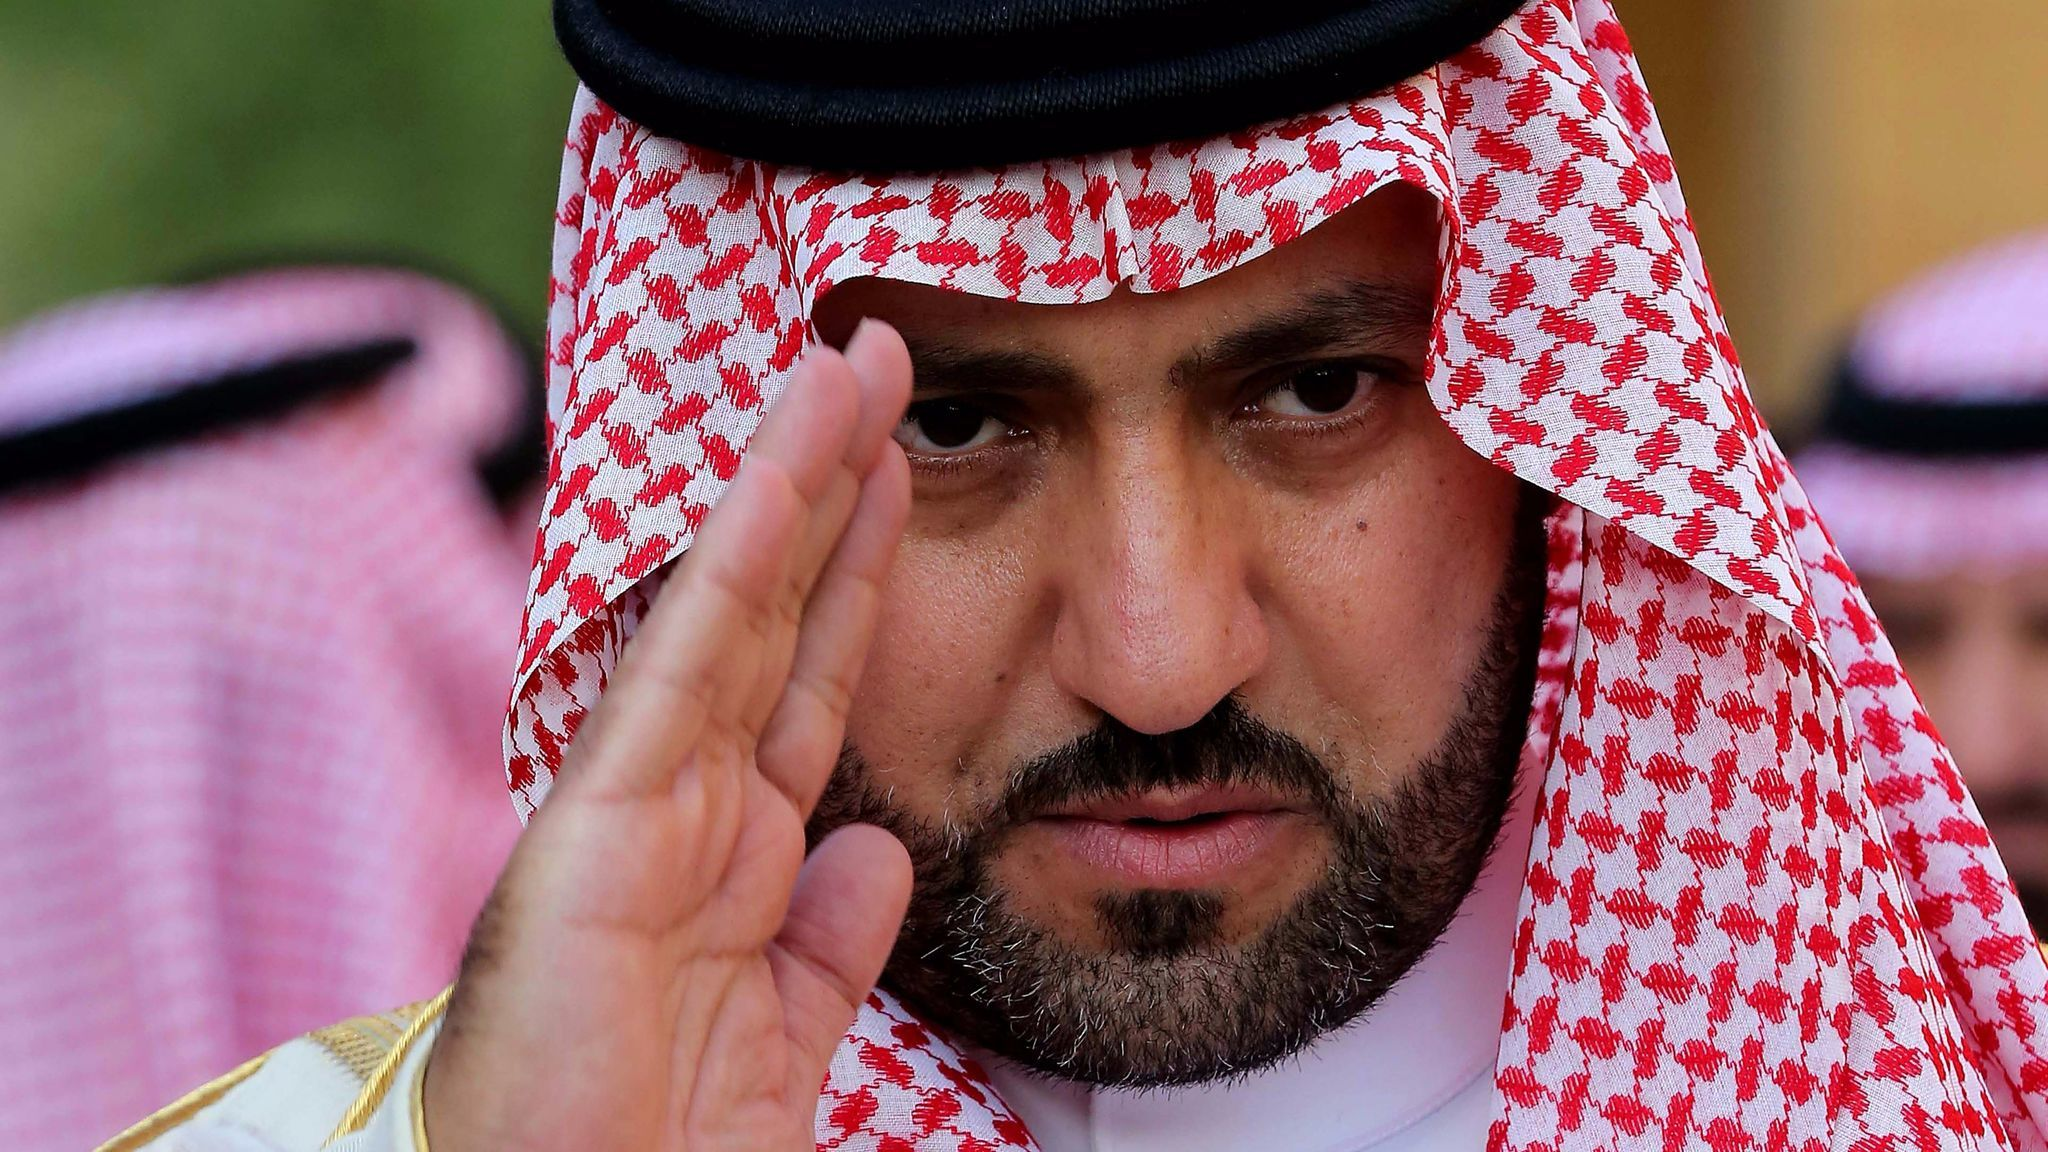 Saudi Arabia arrests 11 princes, including billionaire, in corruption crackdown